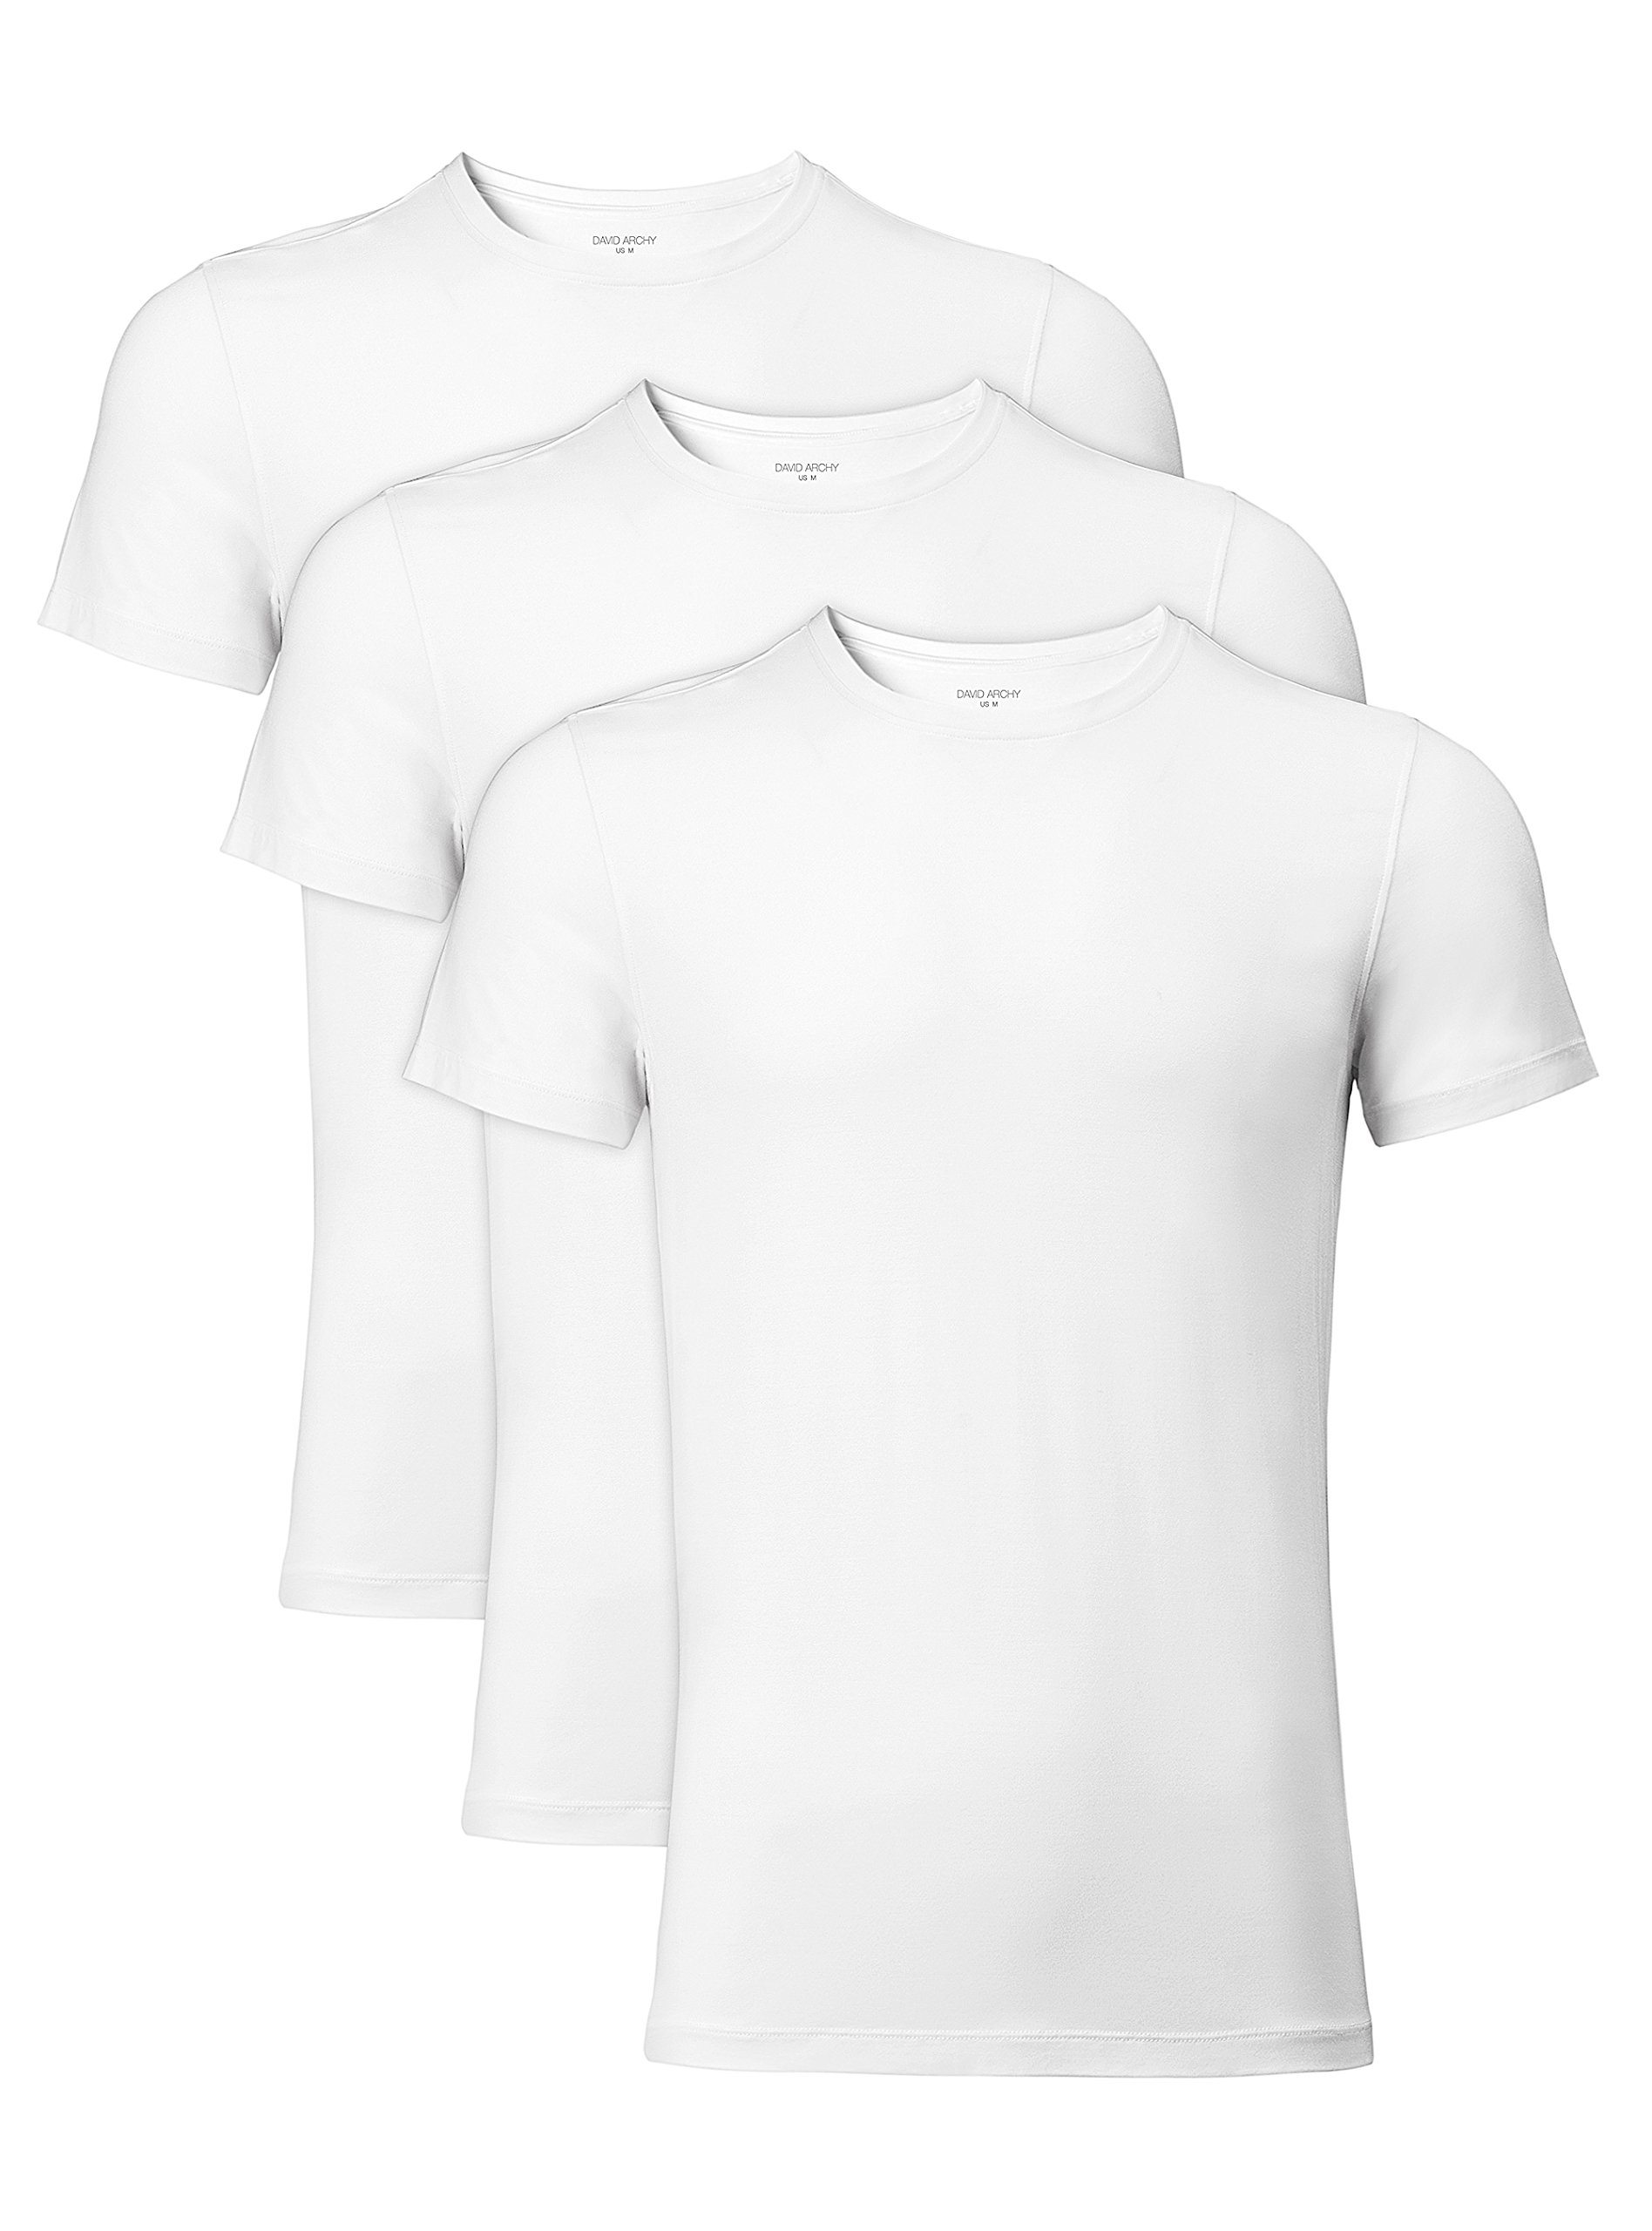 David Archy Men's 3 Pack Bamboo Rayon Undershirts Crew Neck Slim Fit Tees Short Sleeve T-Shirts(M,White)